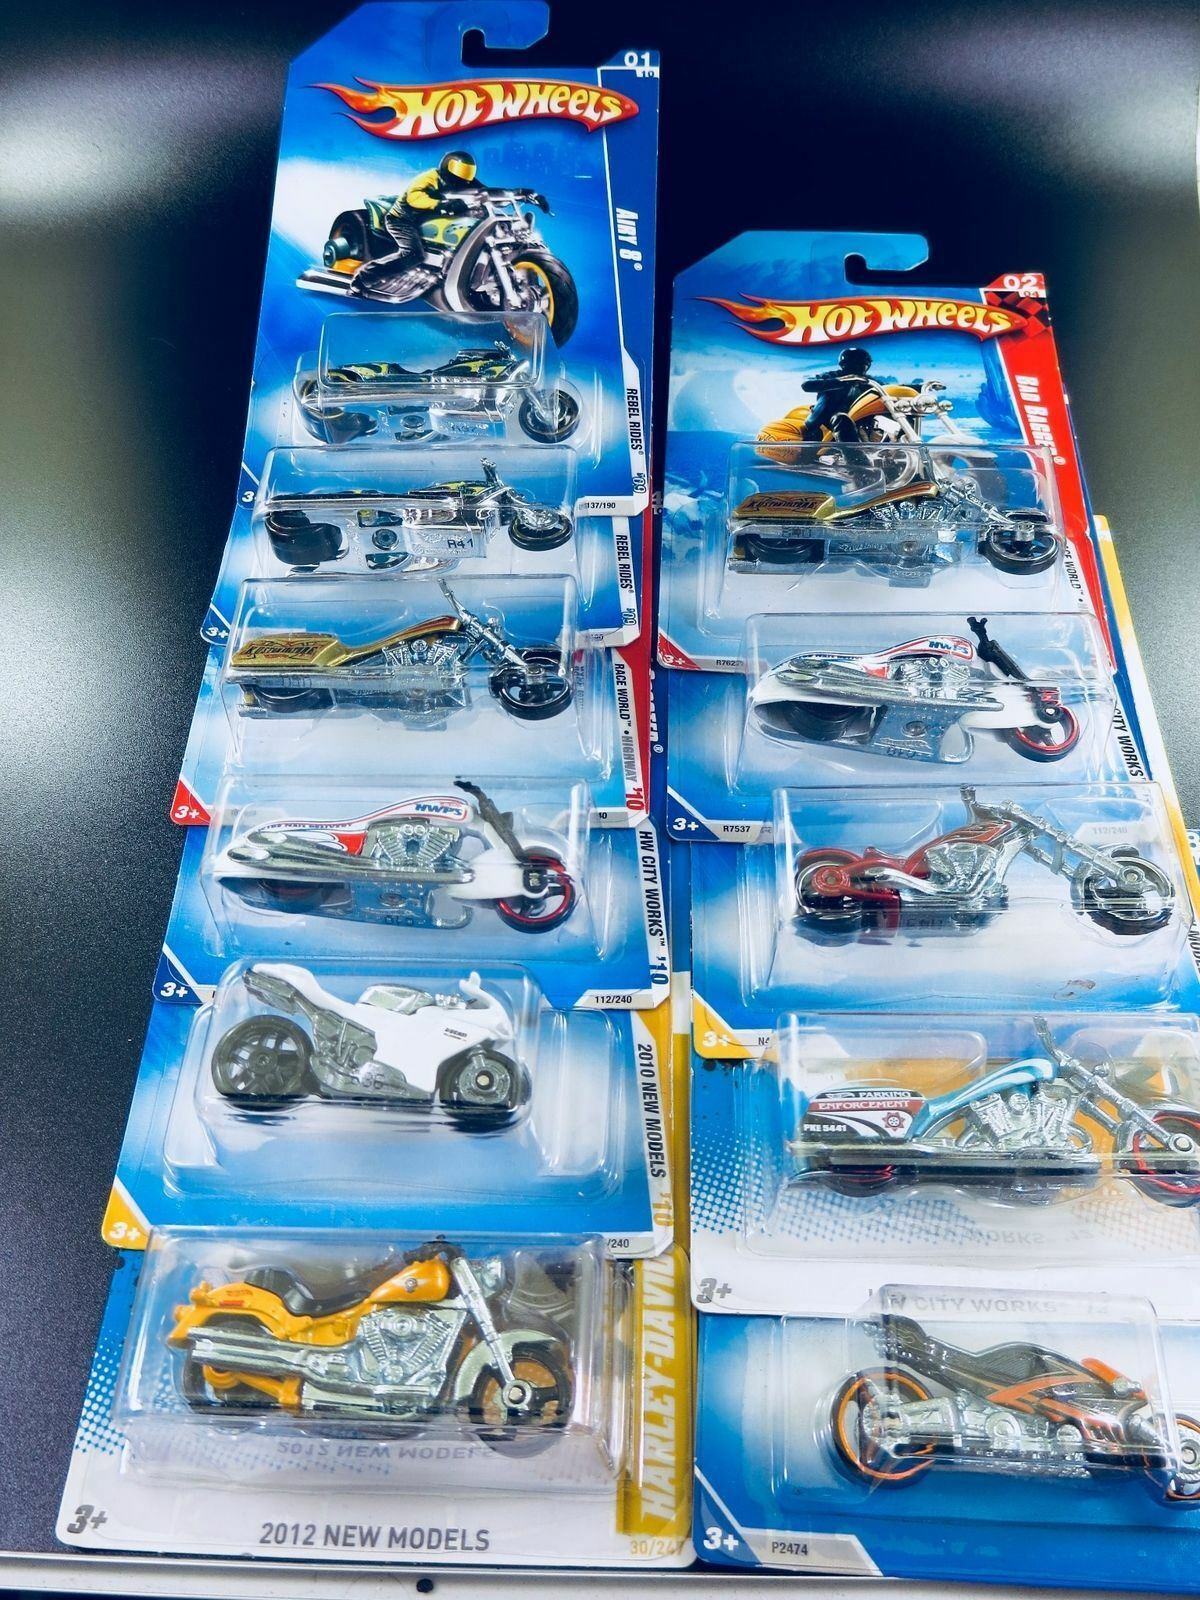 Hot Wheels MotorCycle lot Of 11 Plus Extra Surprise. You Won't Be Disappointed